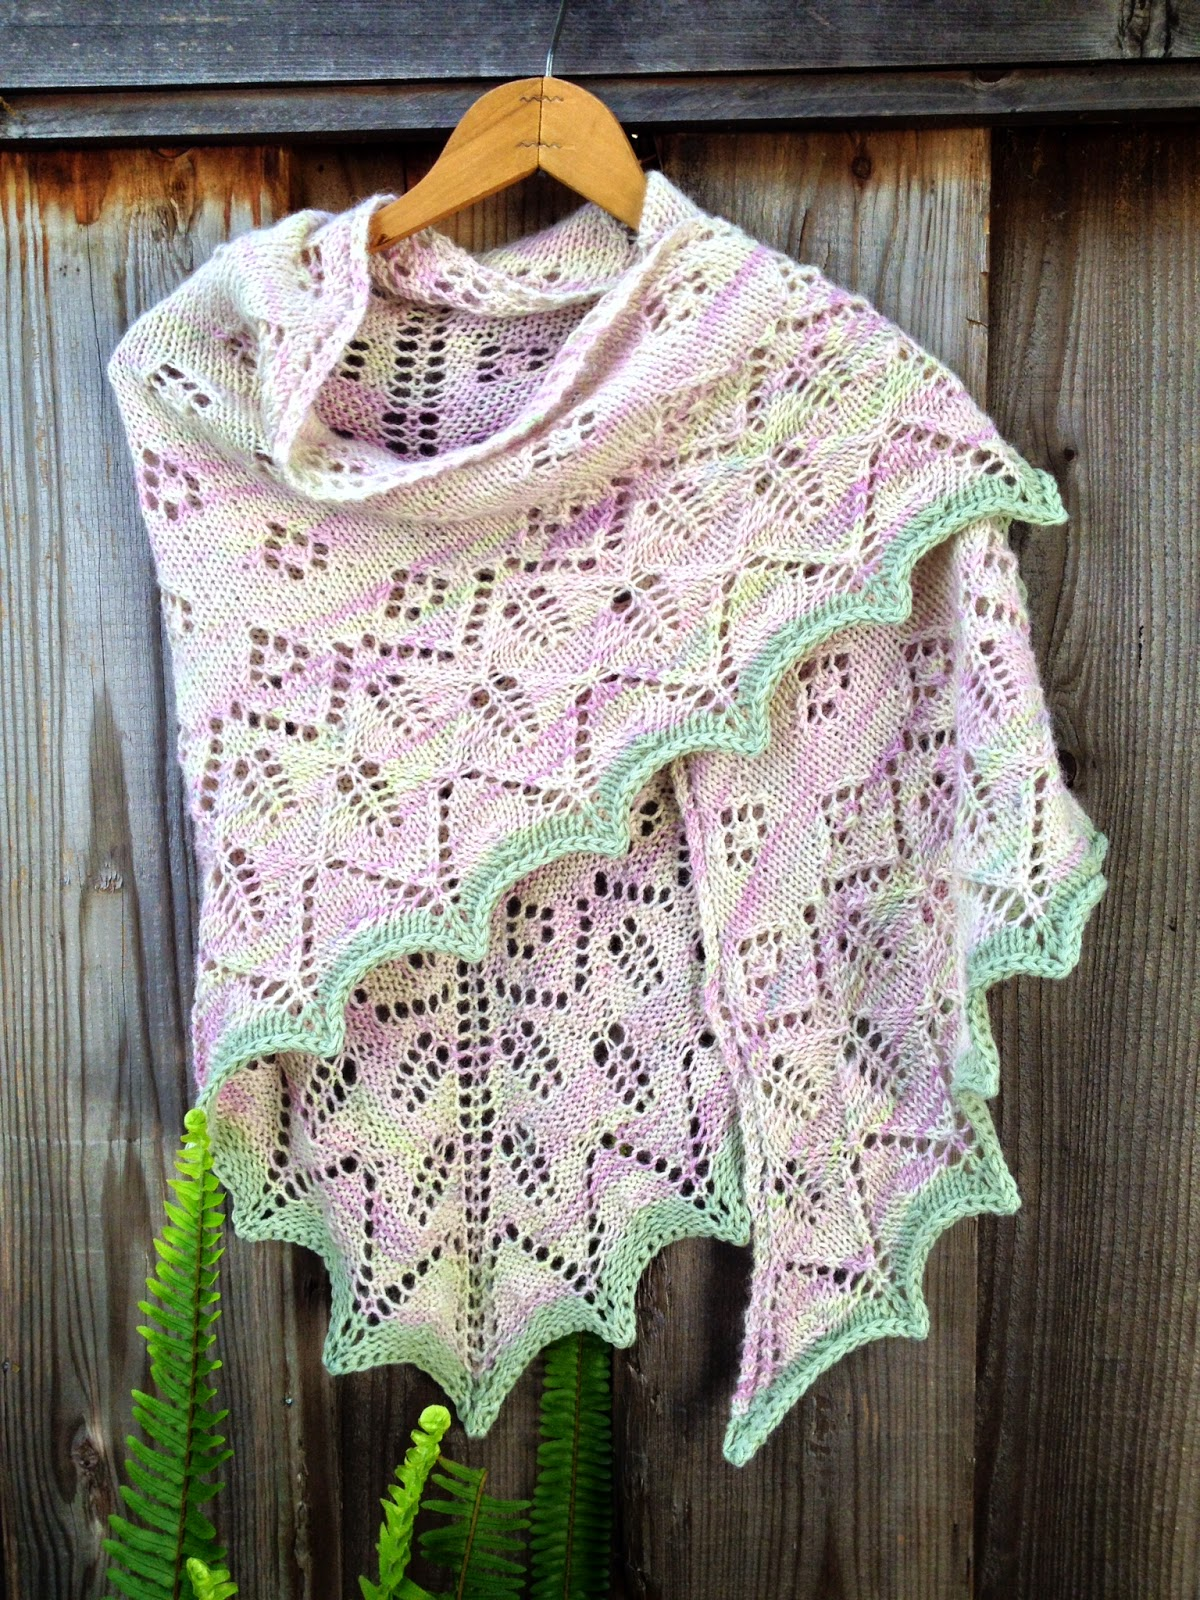 Learn To Read Knitting Patterns : Knitted Candy: Made Time to Learn How to Read Knitting Pattern Charts - Finis...